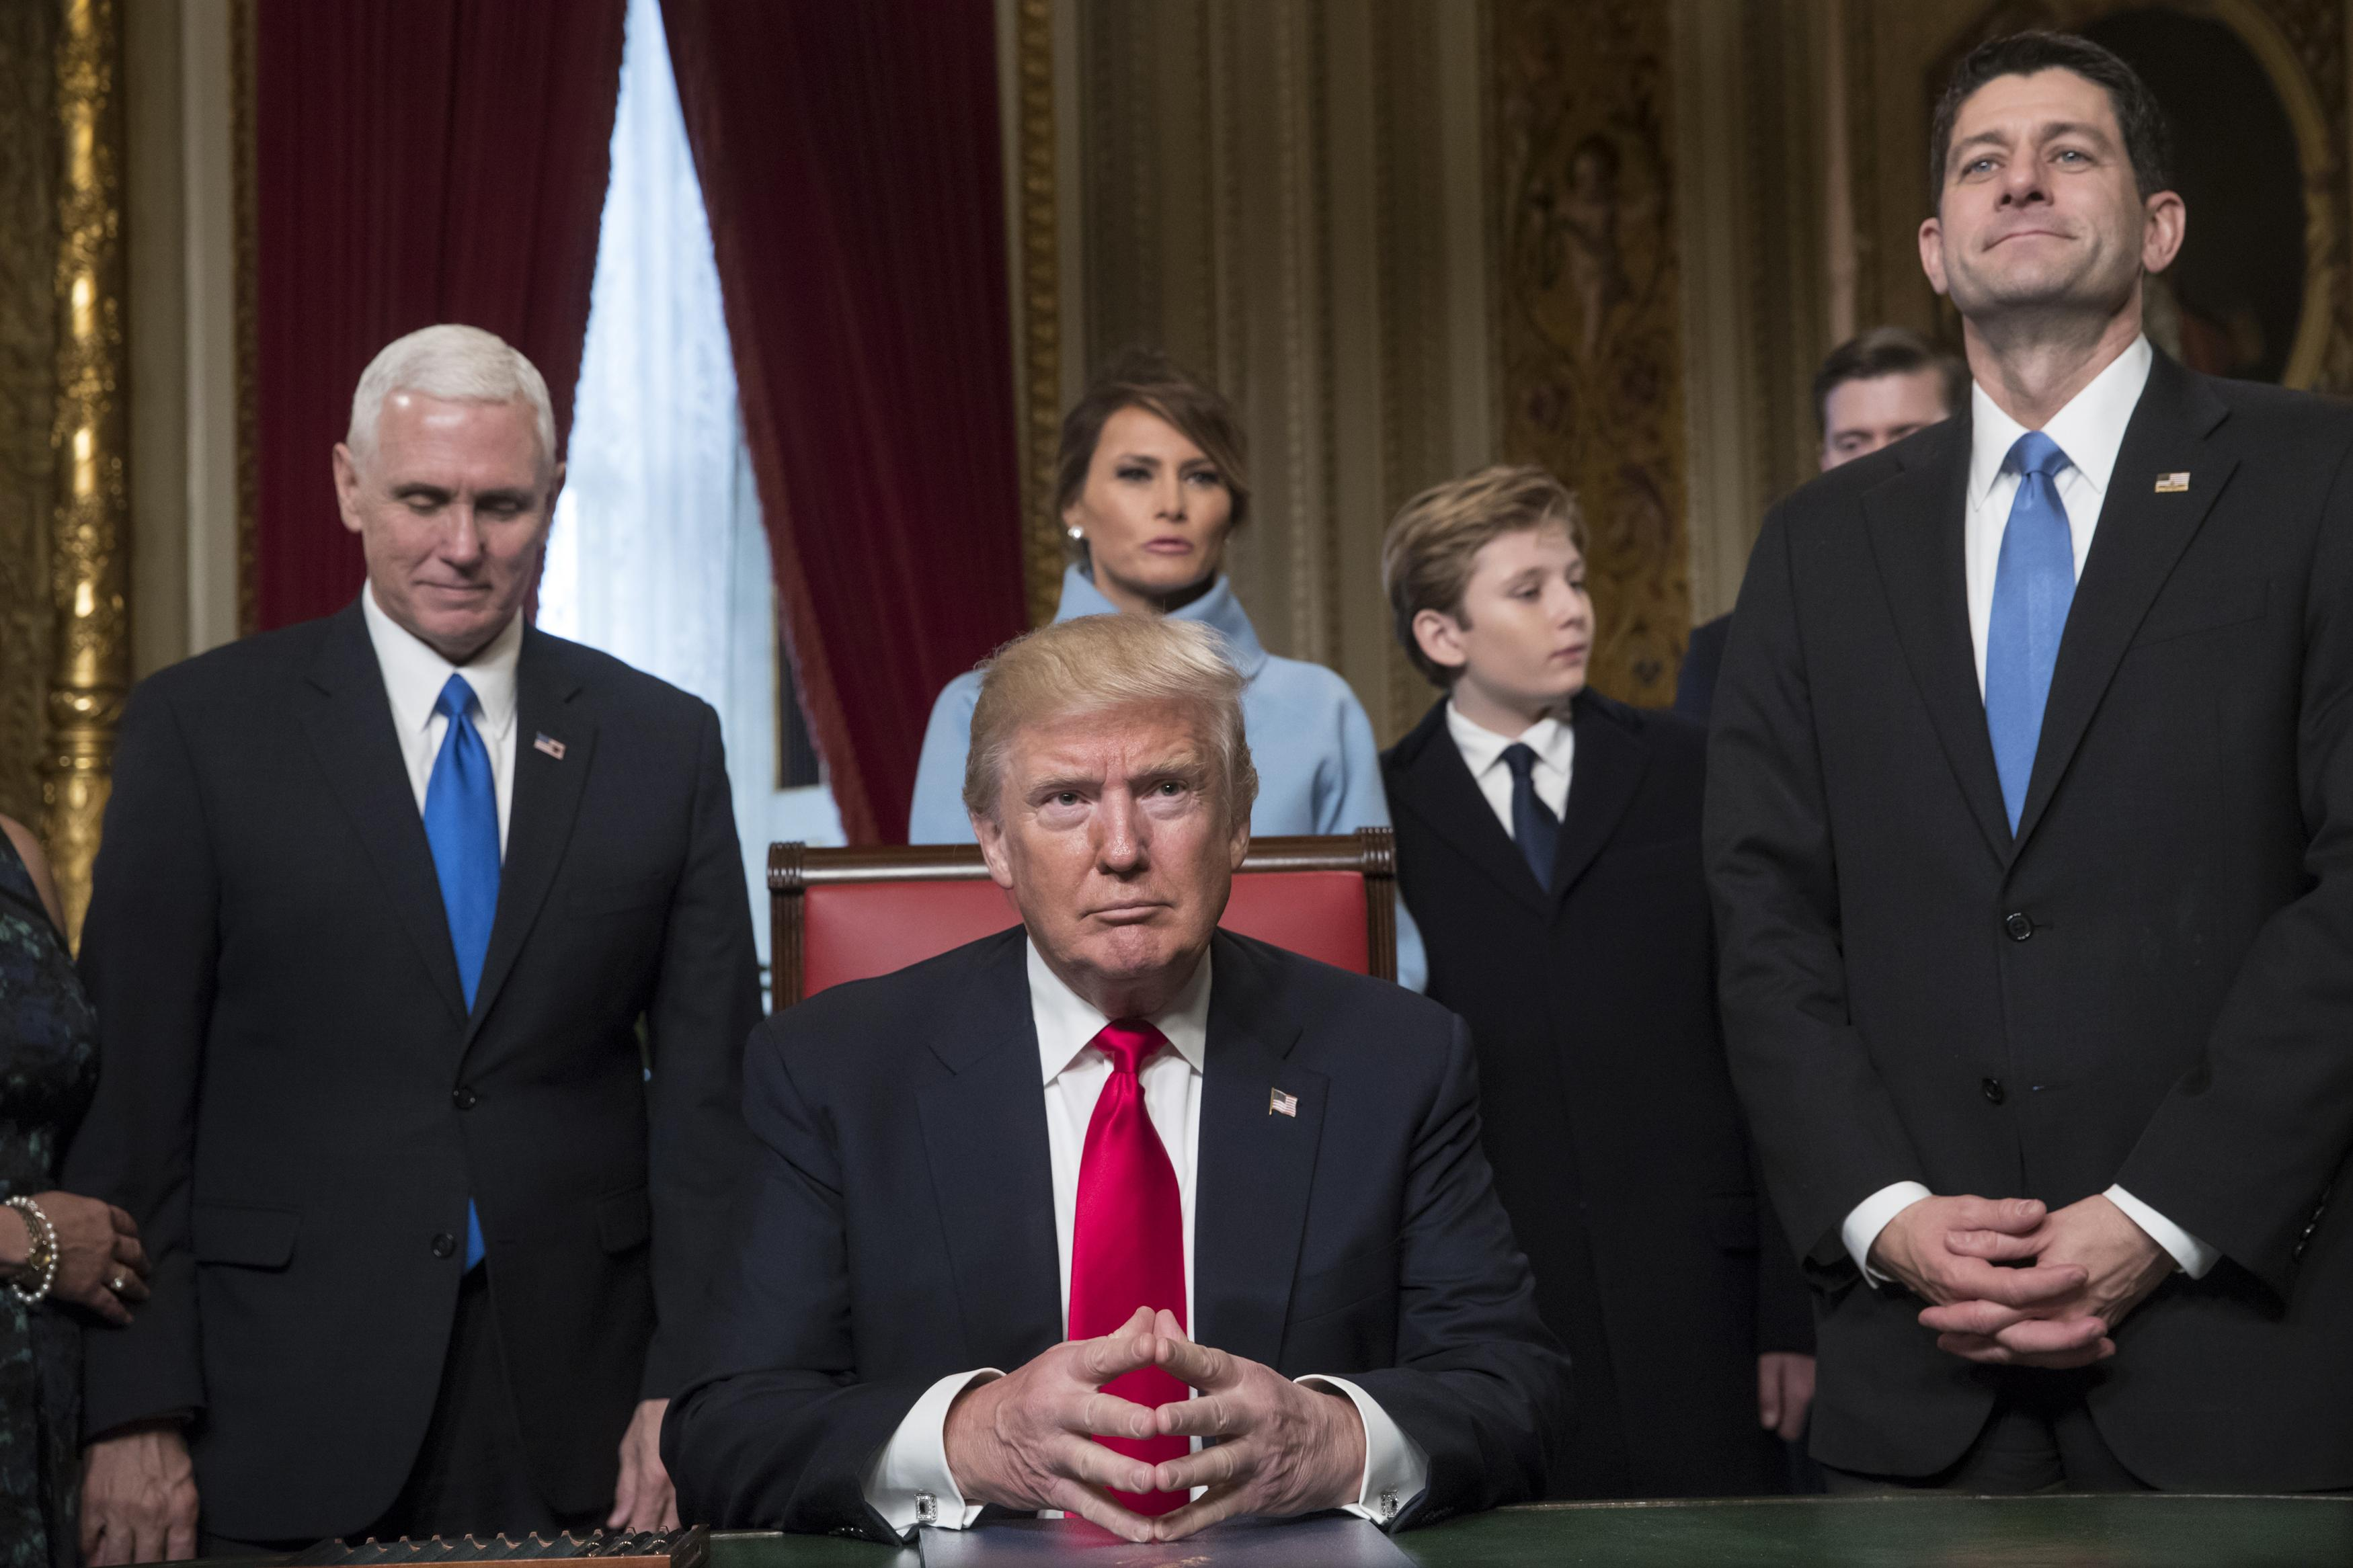 President Donald Trump Is Joined By The Congressional Leadership And His Family Before Formally Signing Cabinet Nominations Into Law In S